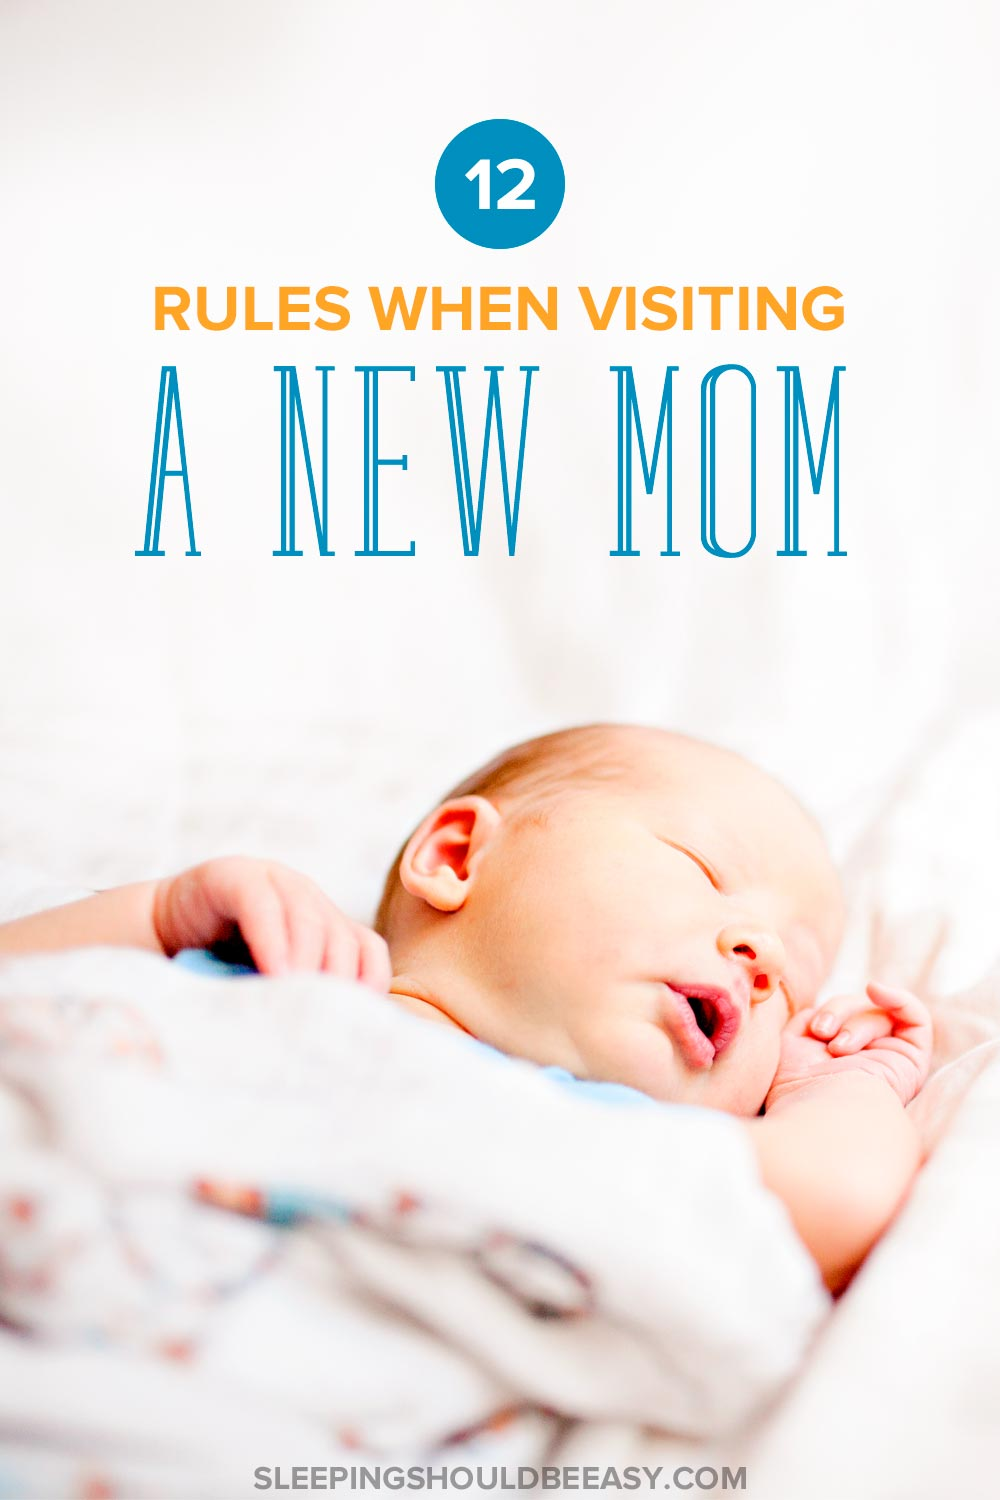 A newborn baby sleeping: 12 rules to follow when visiting a new mom